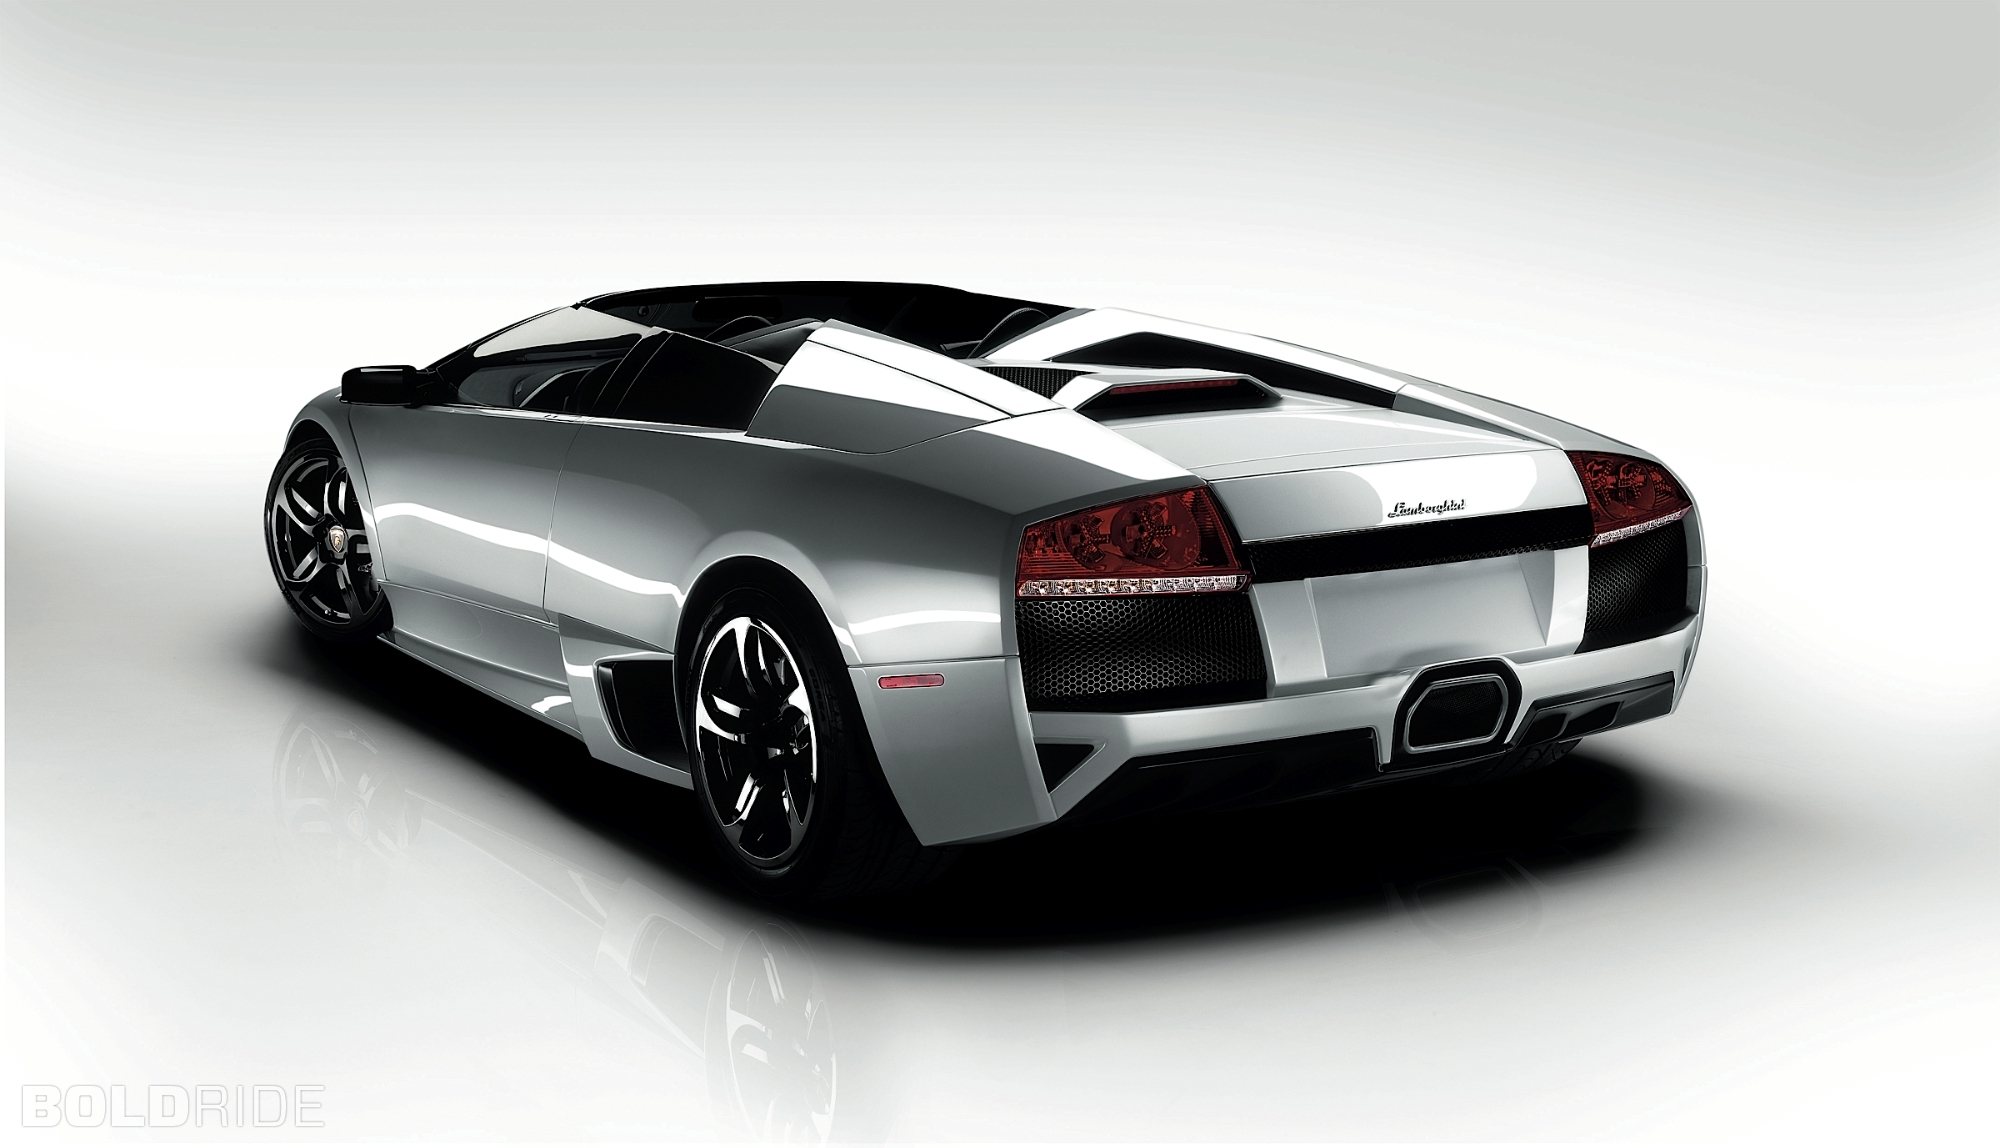 2010 lamborghini murcielago photos, informations, articles